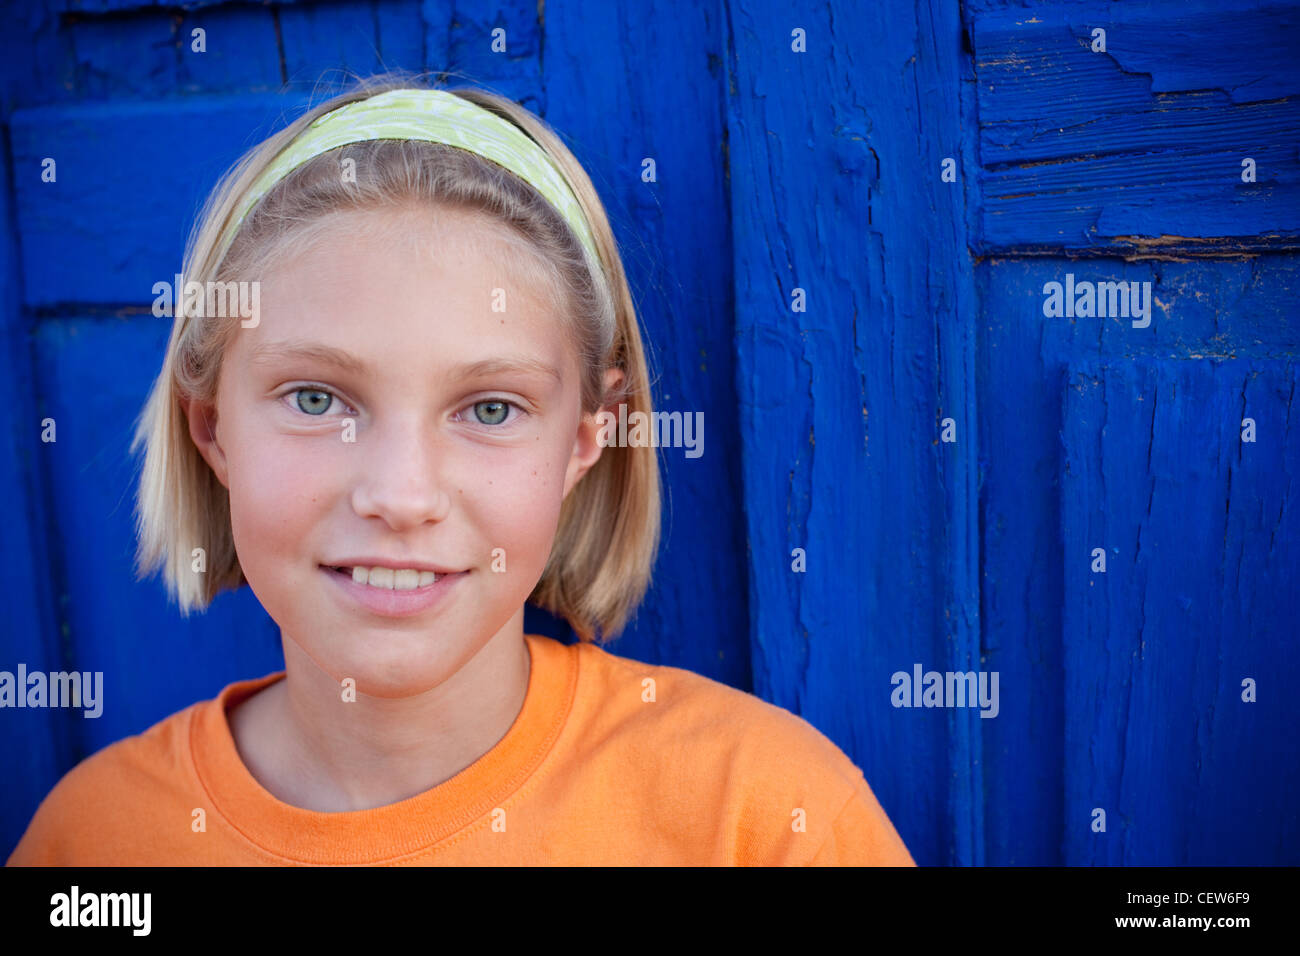 Nine year old girl wearing a headband stands in front of bright blue door smiling. - Stock Image